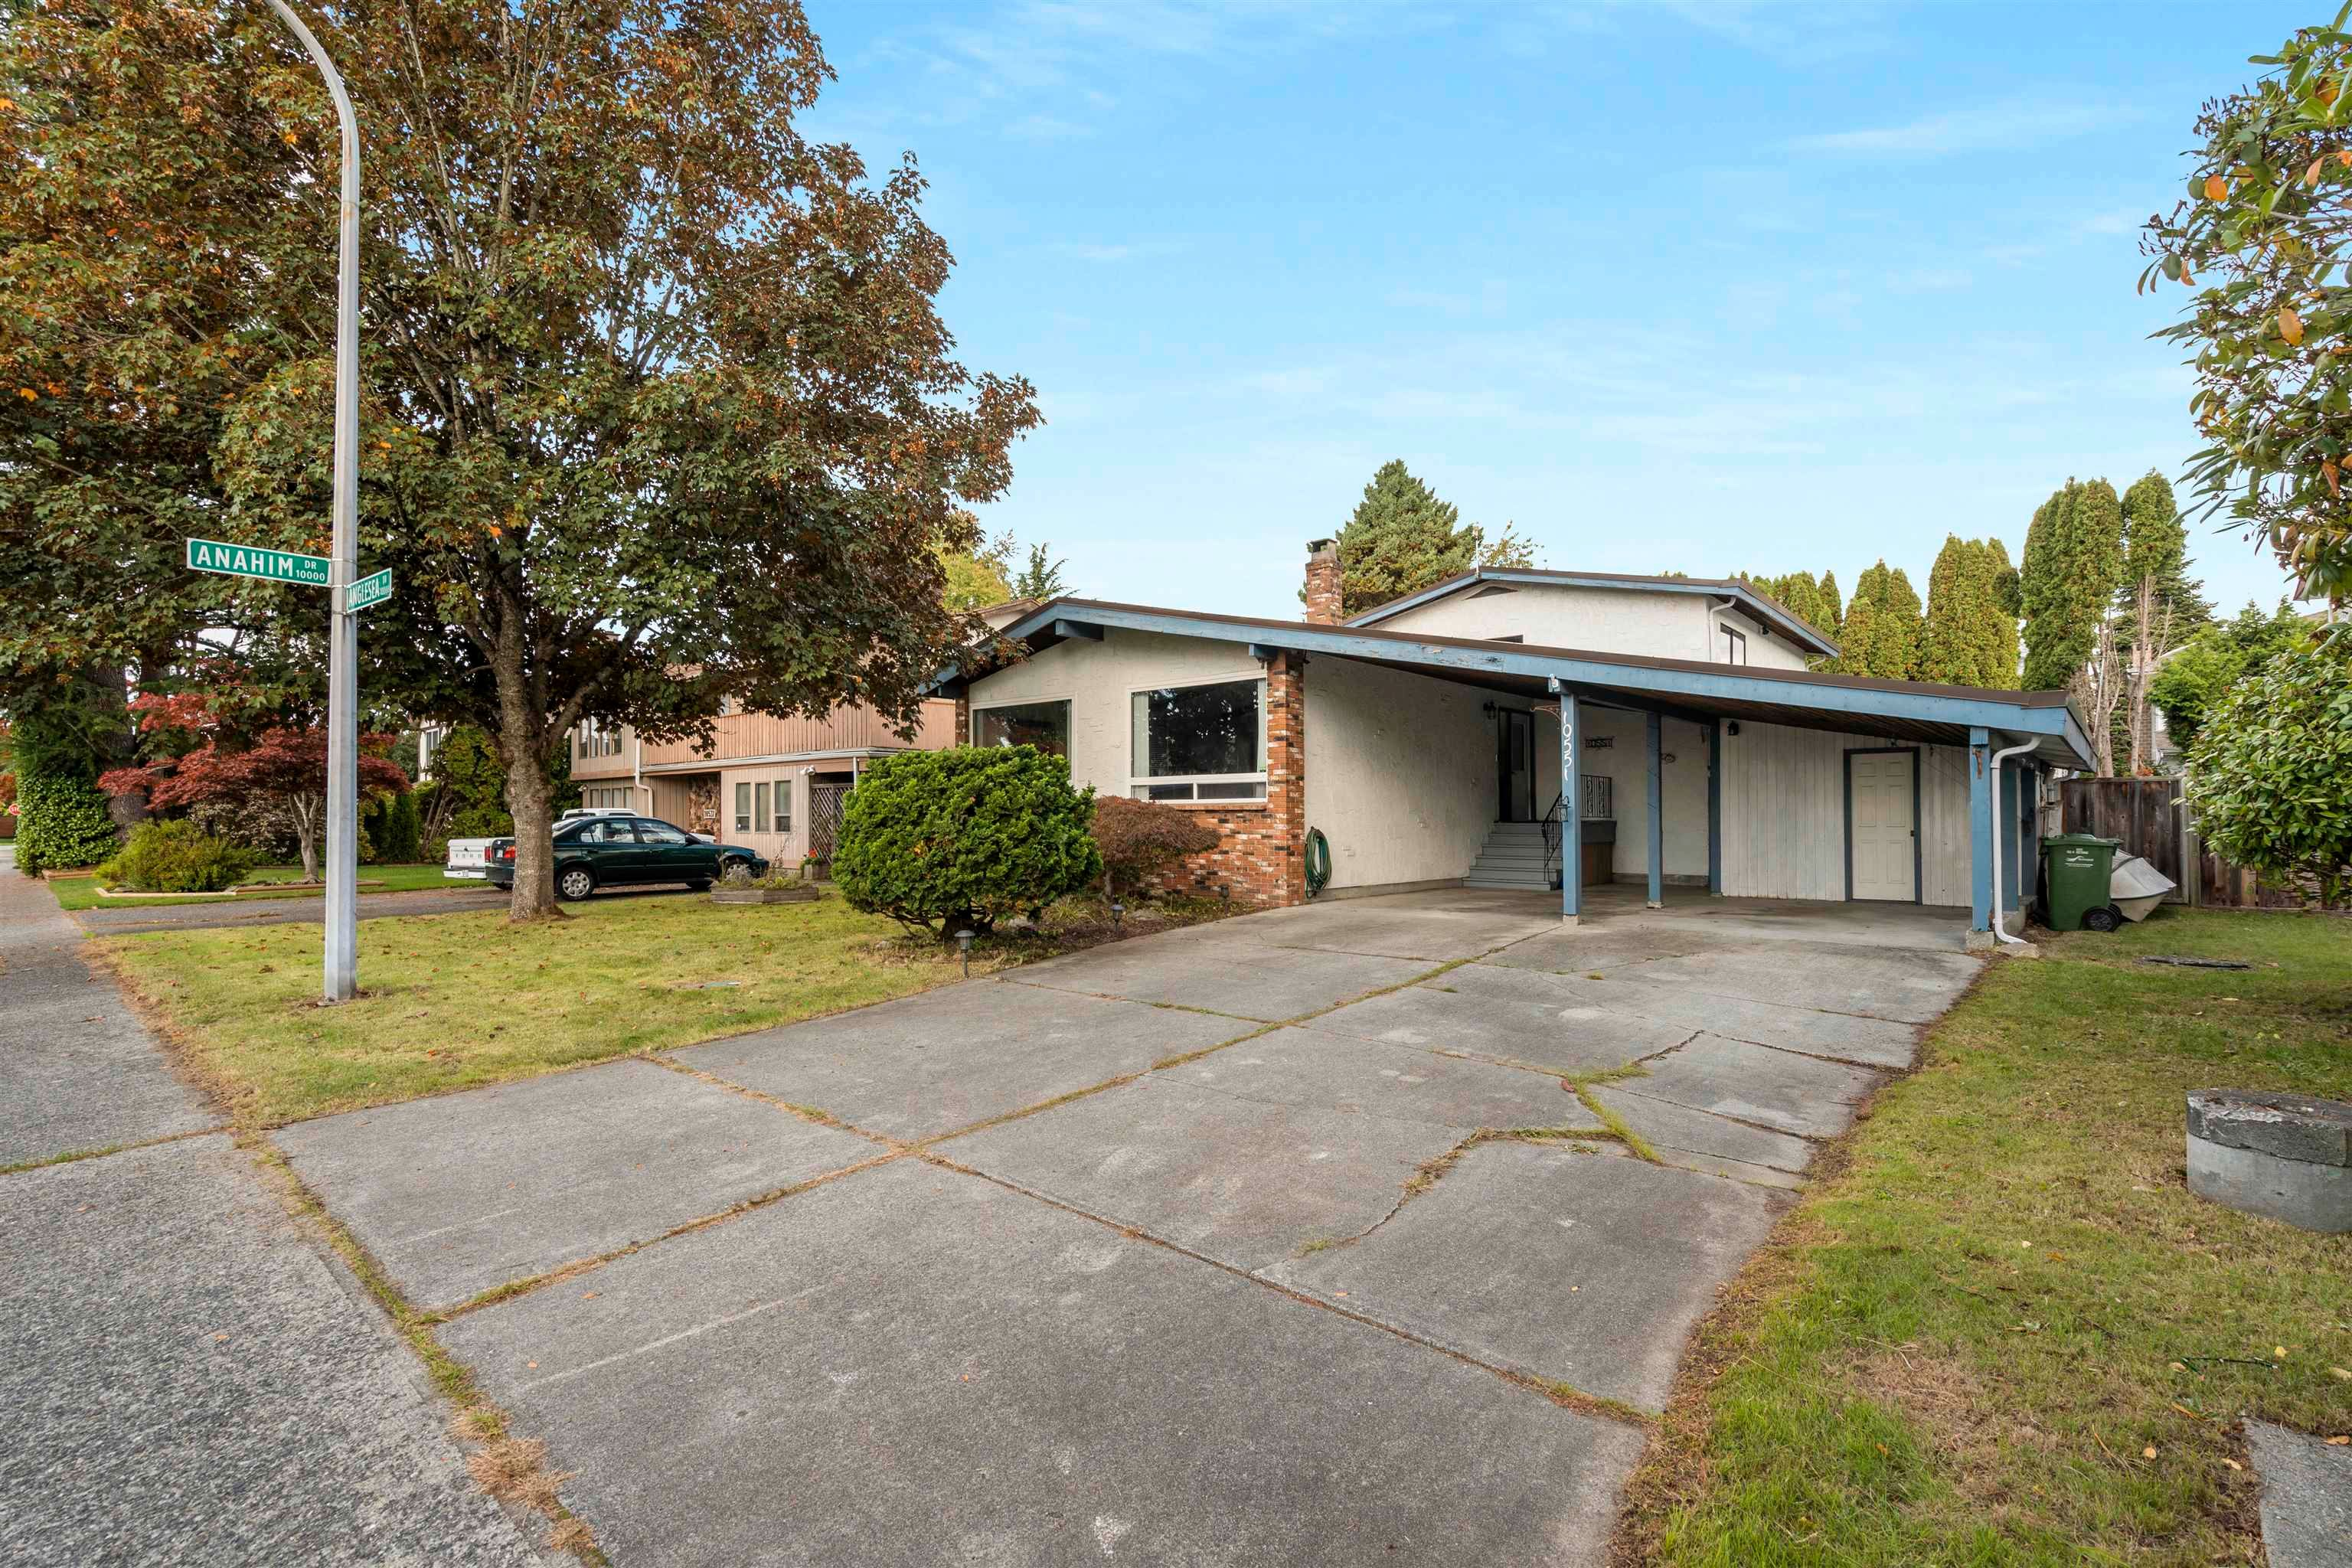 Main Photo: 10551 ANGLESEA Drive in Richmond: McNair House for sale : MLS®# R2625021